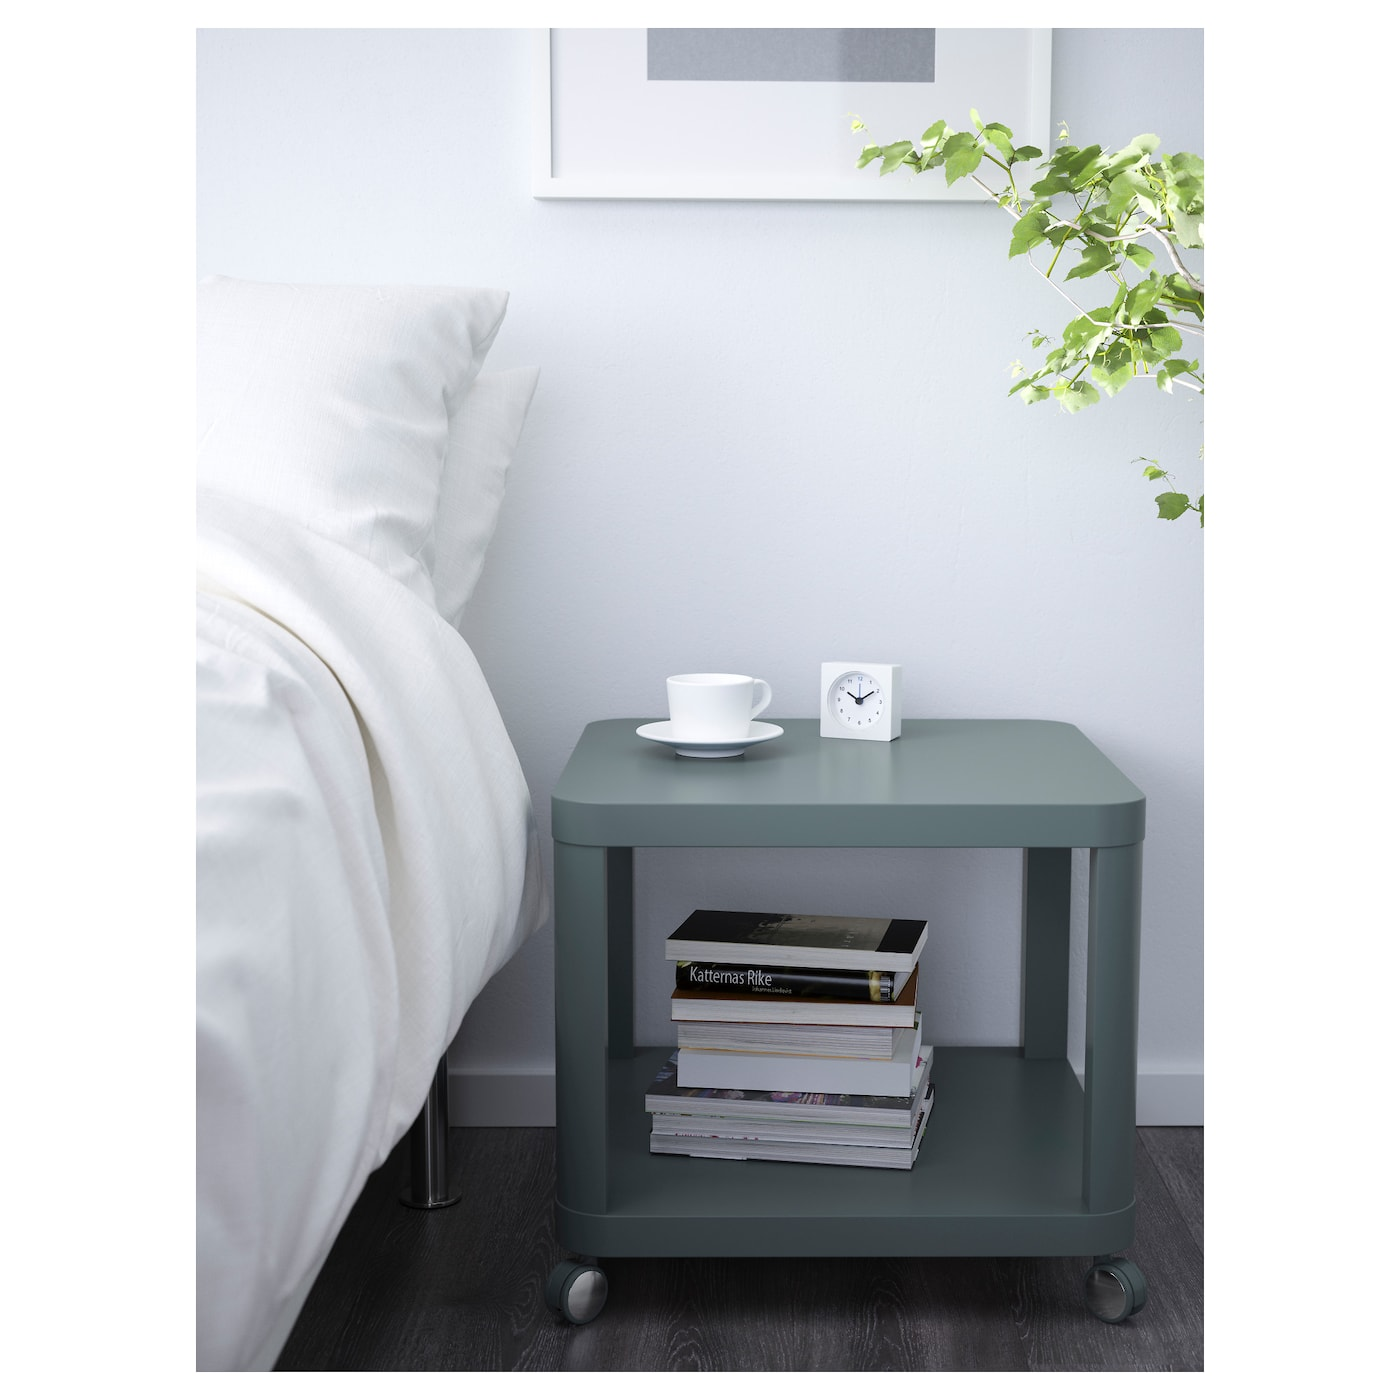 tingby desserte roulante turquoise 50x50 cm ikea. Black Bedroom Furniture Sets. Home Design Ideas